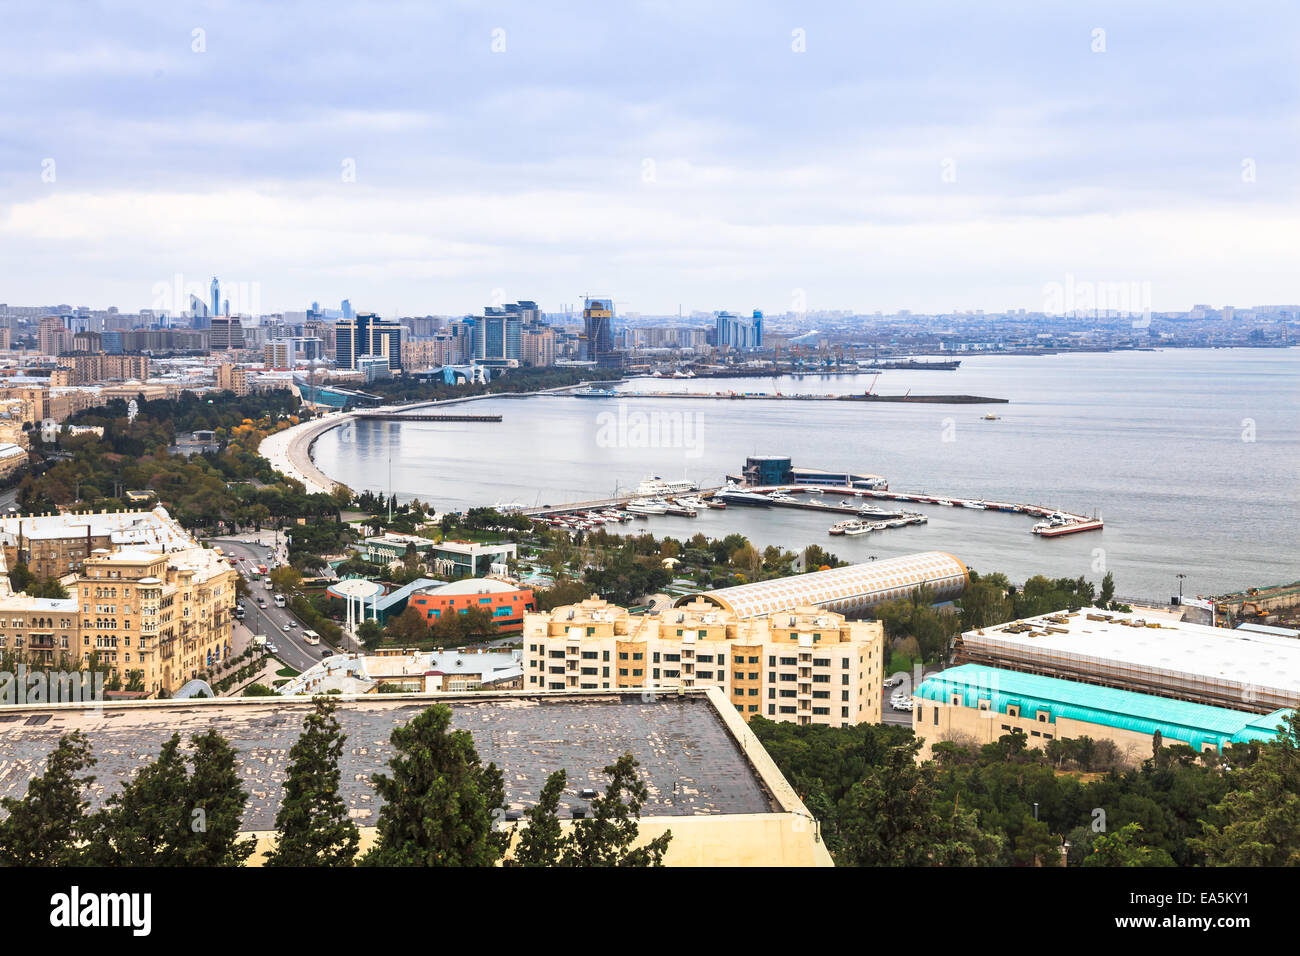 View of Baku and The Caspian Sea - Stock Image